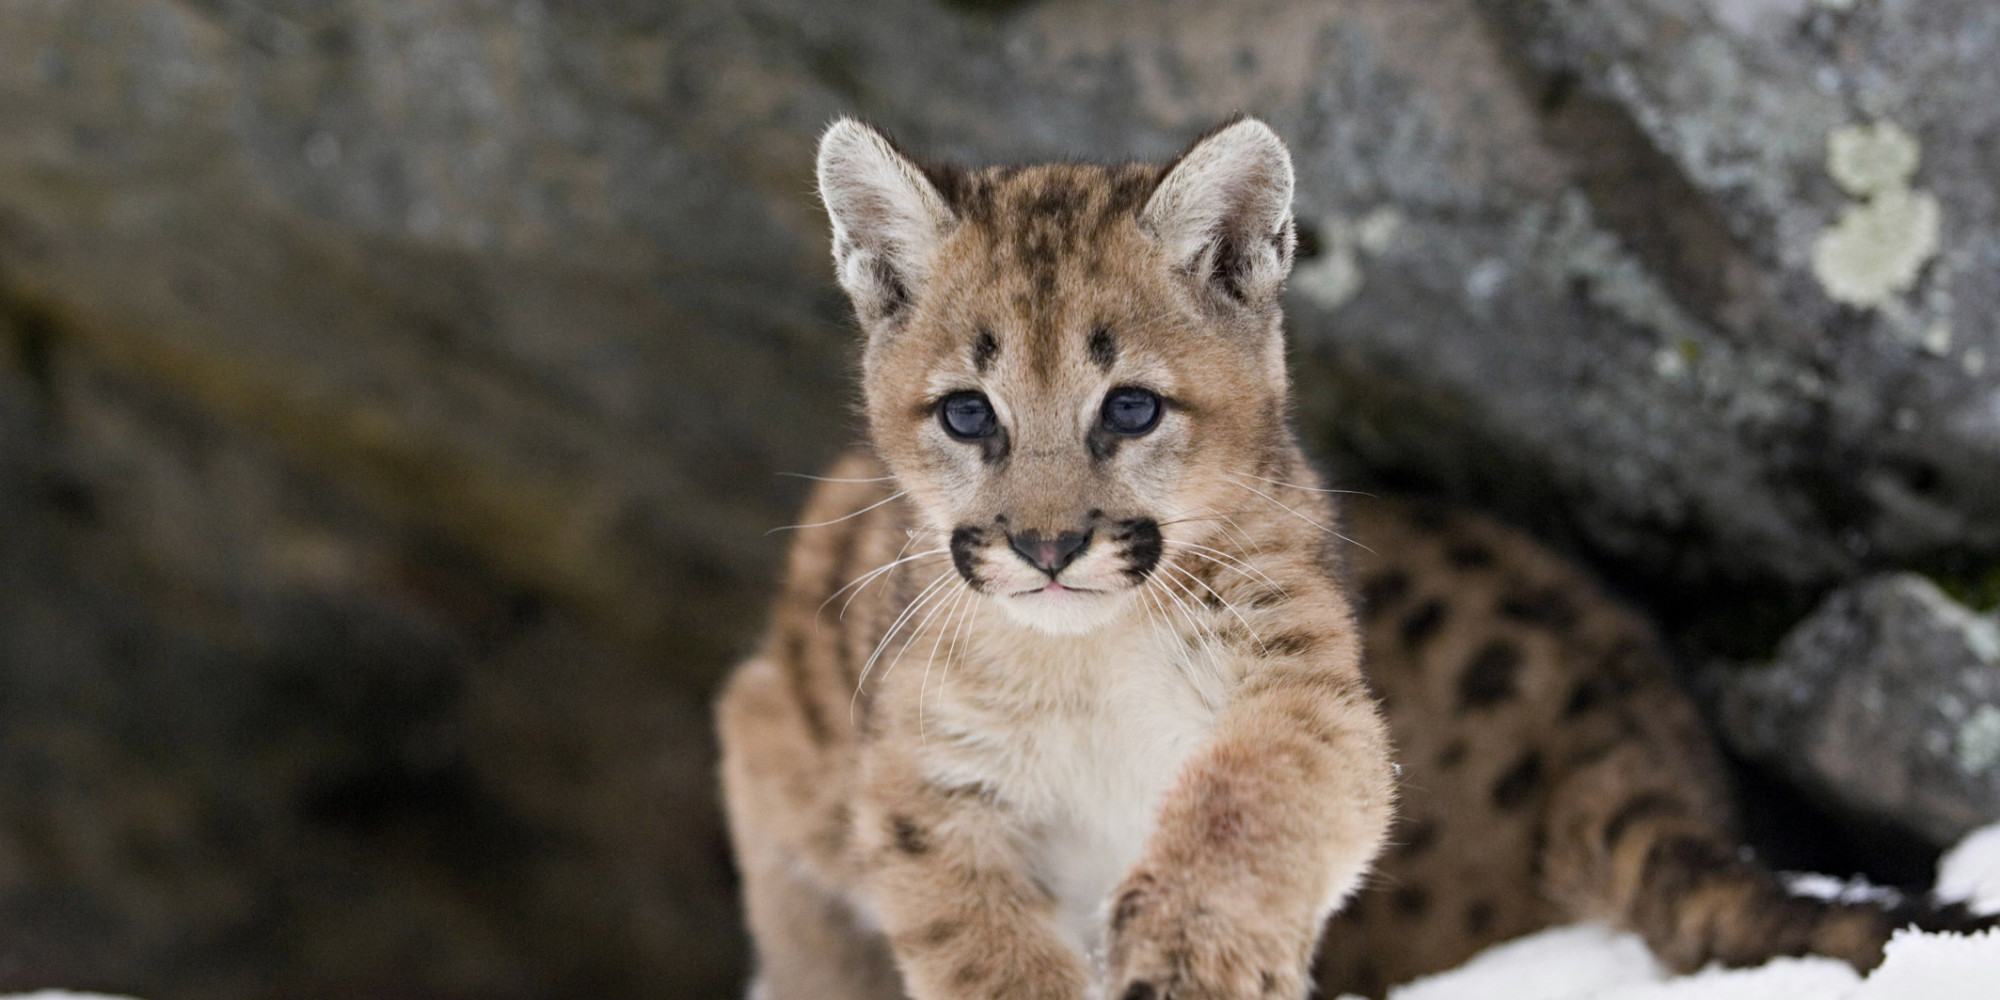 orphaned alberta cougar cub given new home in manitoba zoo. Black Bedroom Furniture Sets. Home Design Ideas